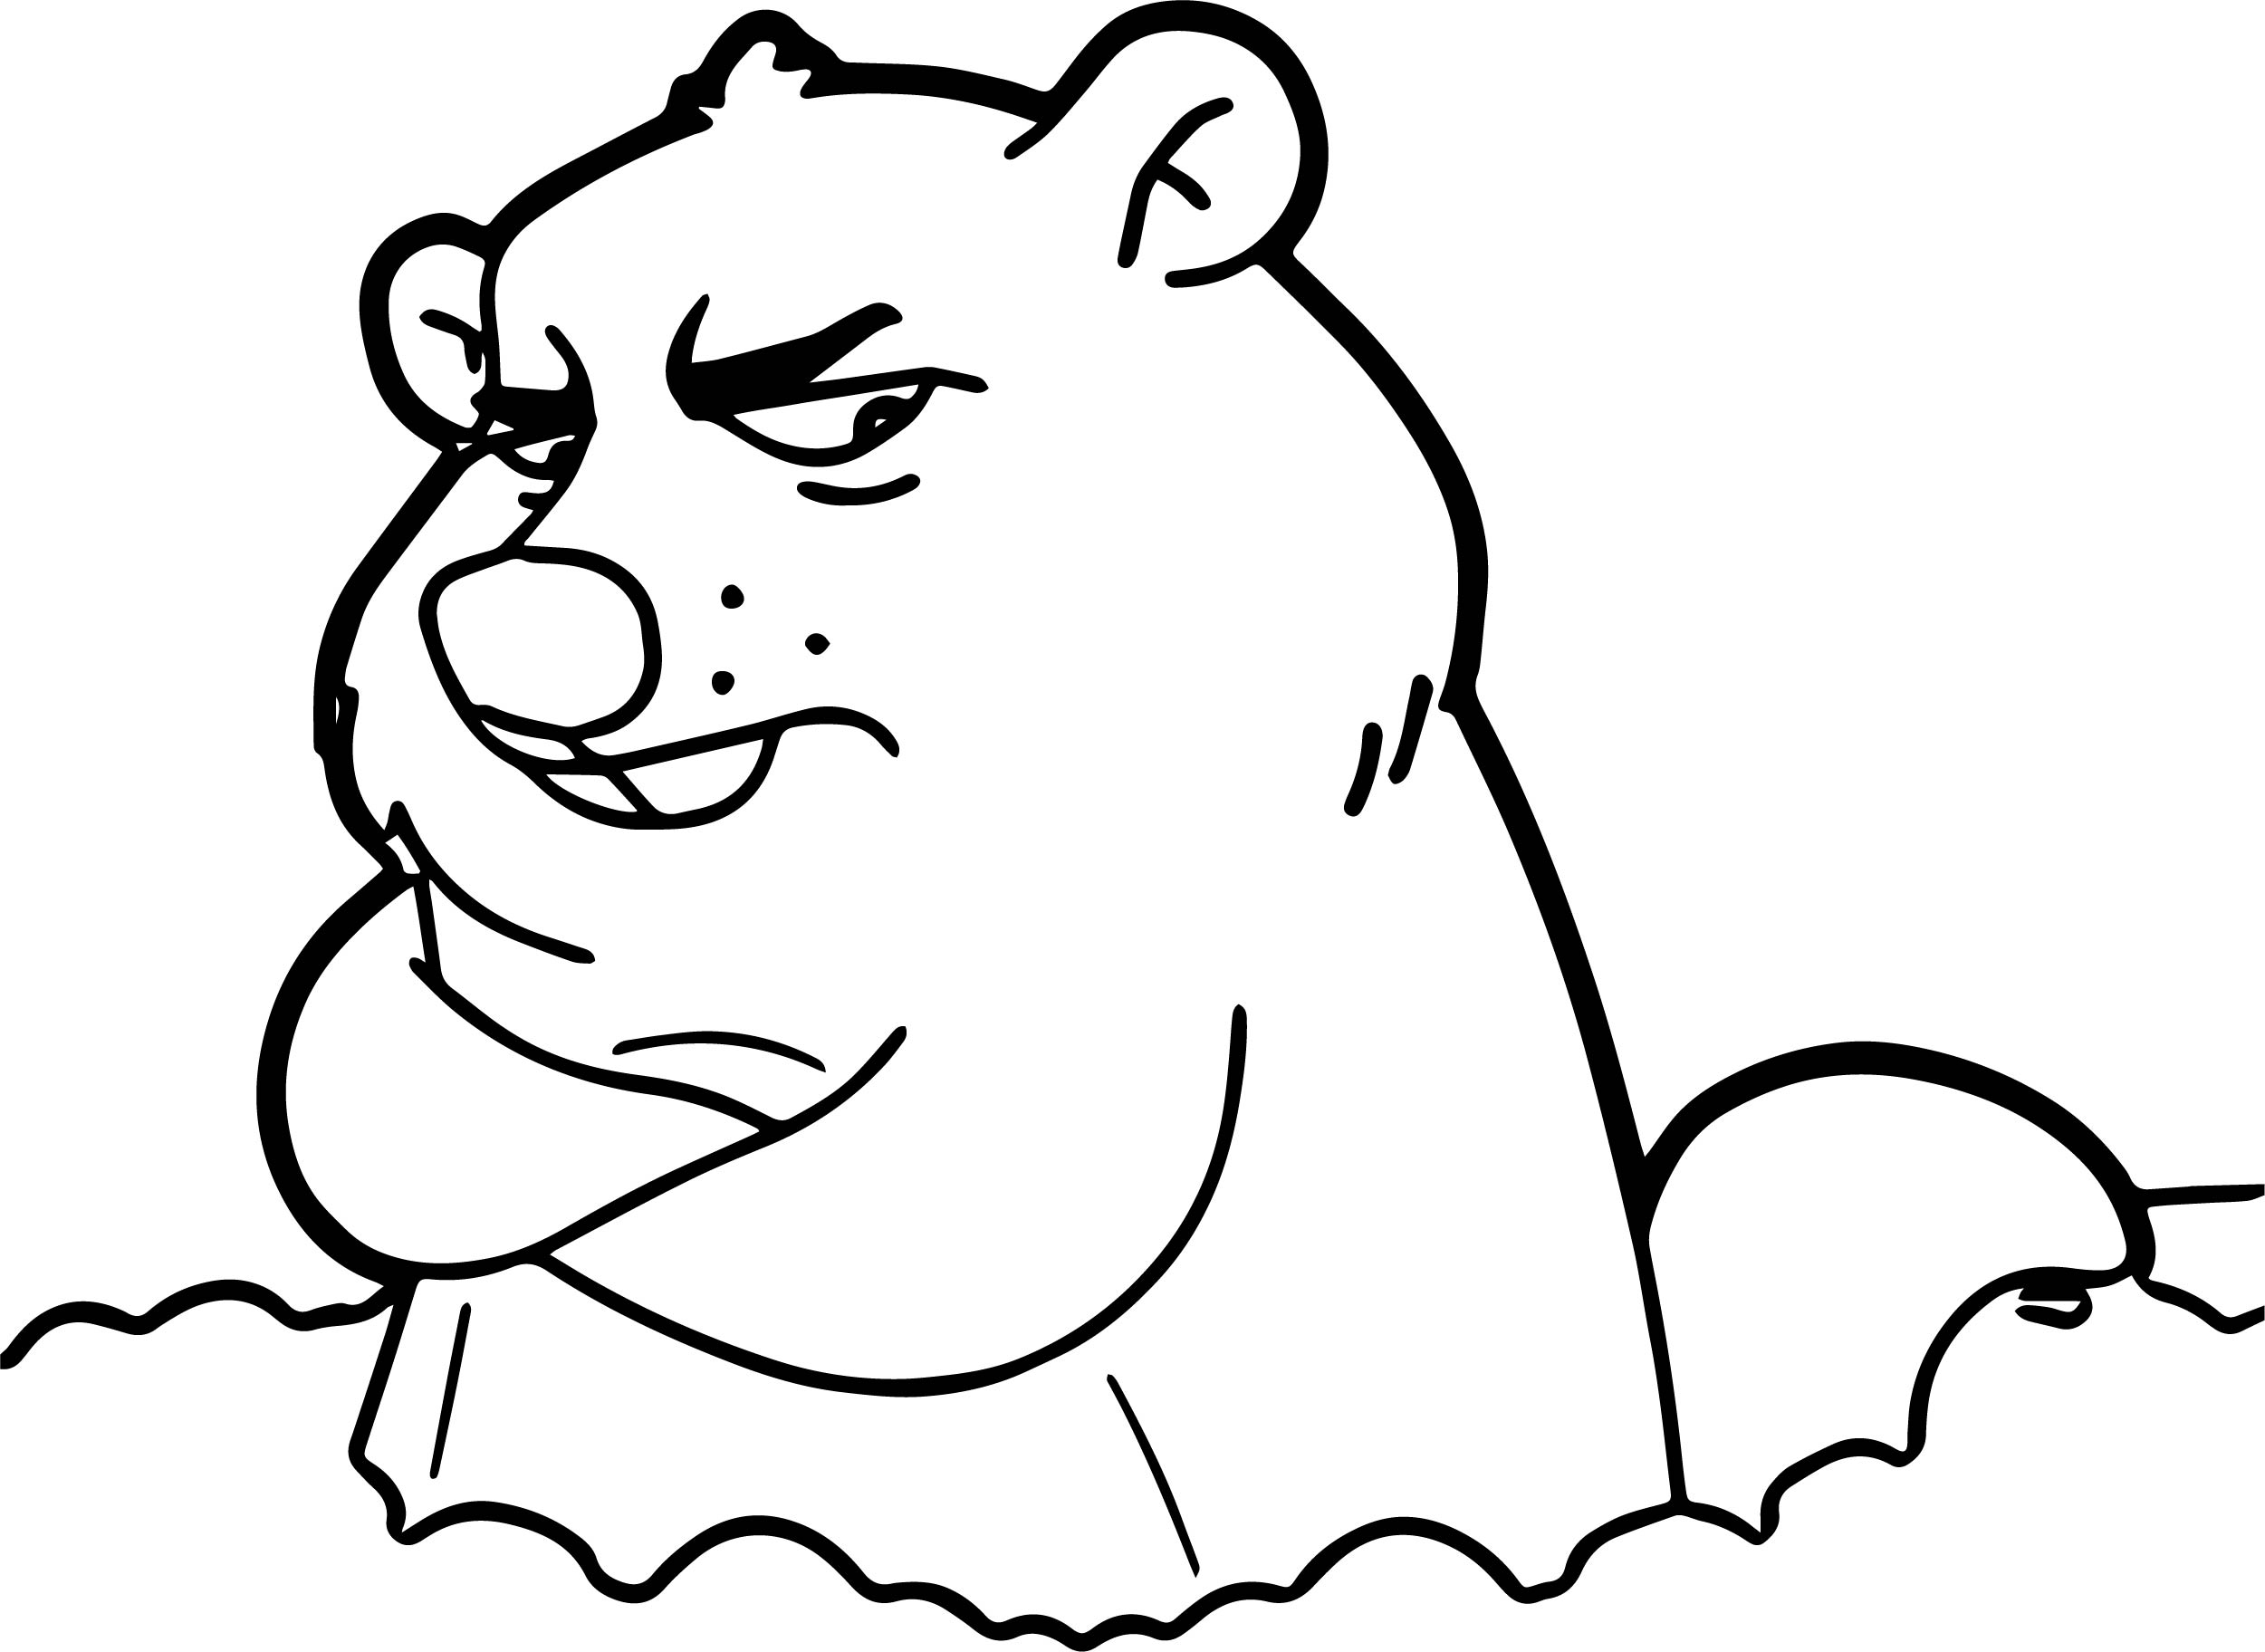 Cartoon Groundhog Day Coloring Page